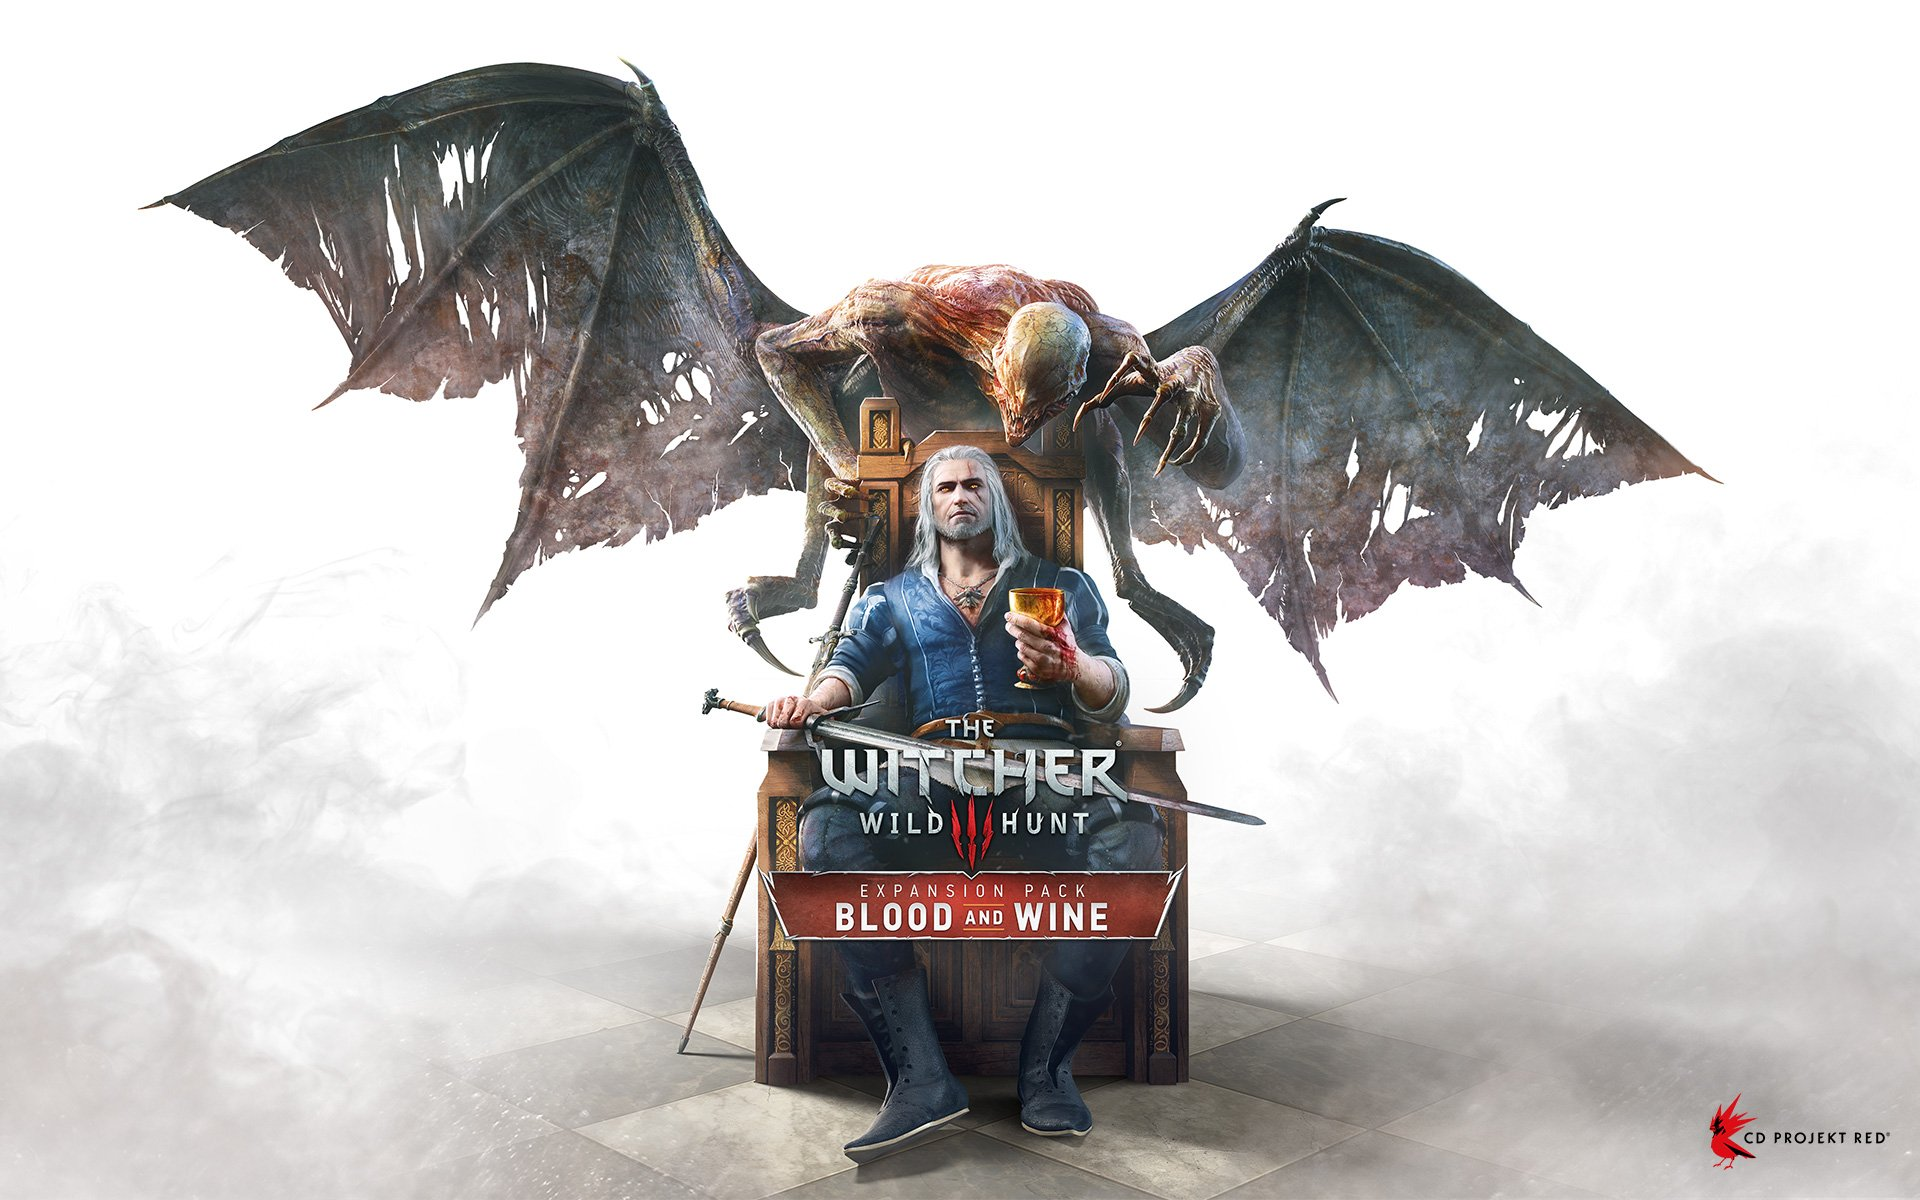 The Witcher 3 Wild Hunt - Blood and Wine Wallpapers